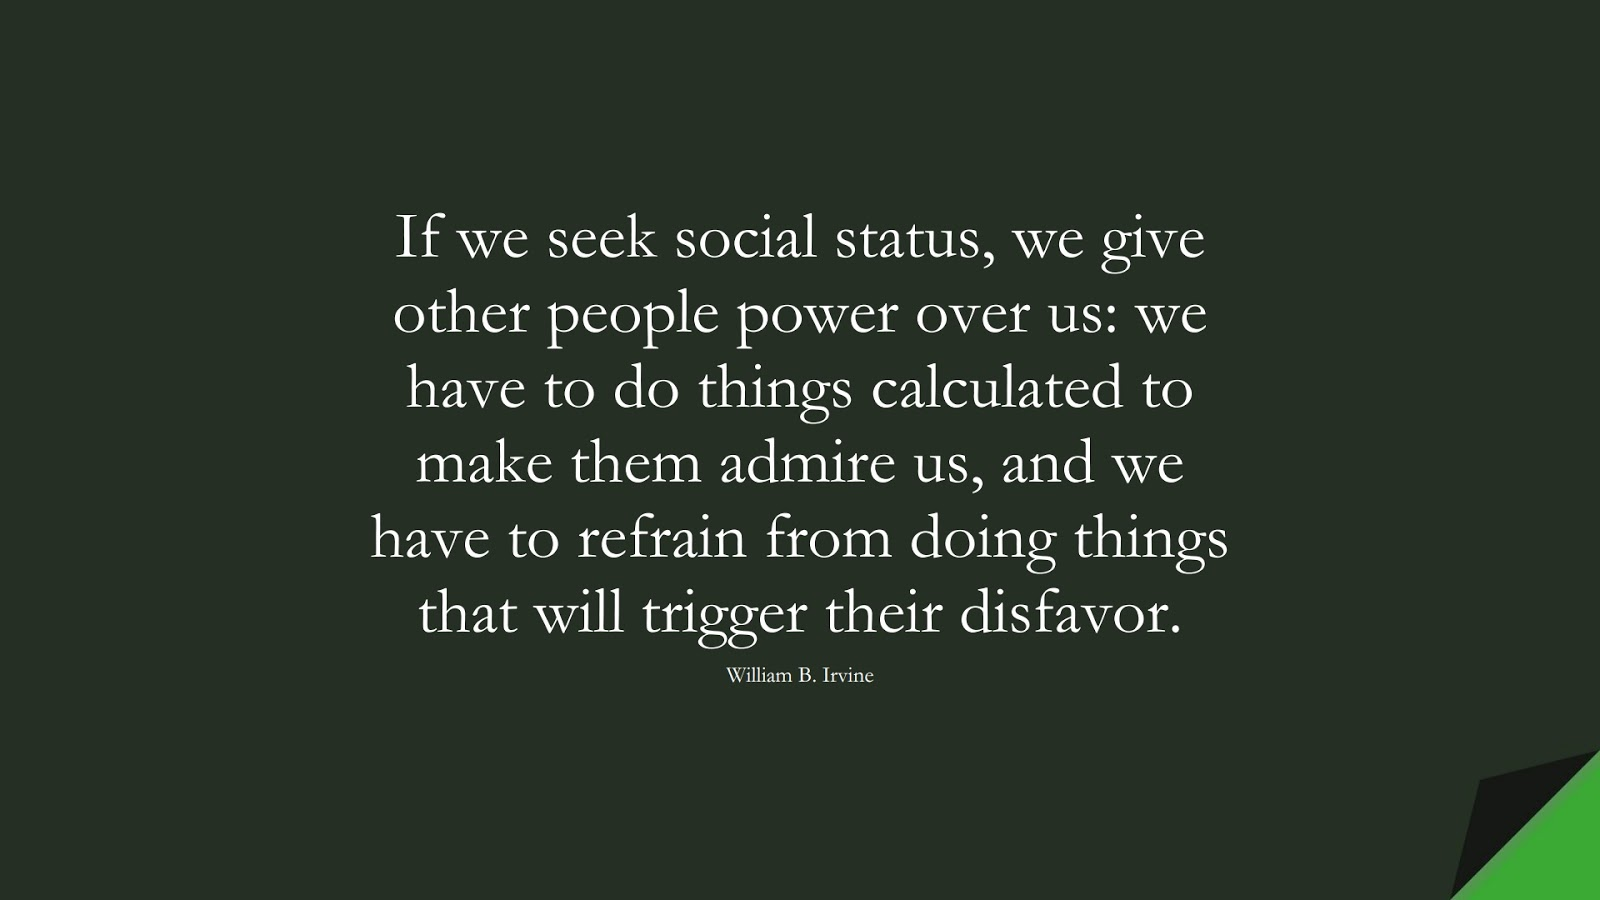 If we seek social status, we give other people power over us: we have to do things calculated to make them admire us, and we have to refrain from doing things that will trigger their disfavor. (William B. Irvine);  #StoicQuotes